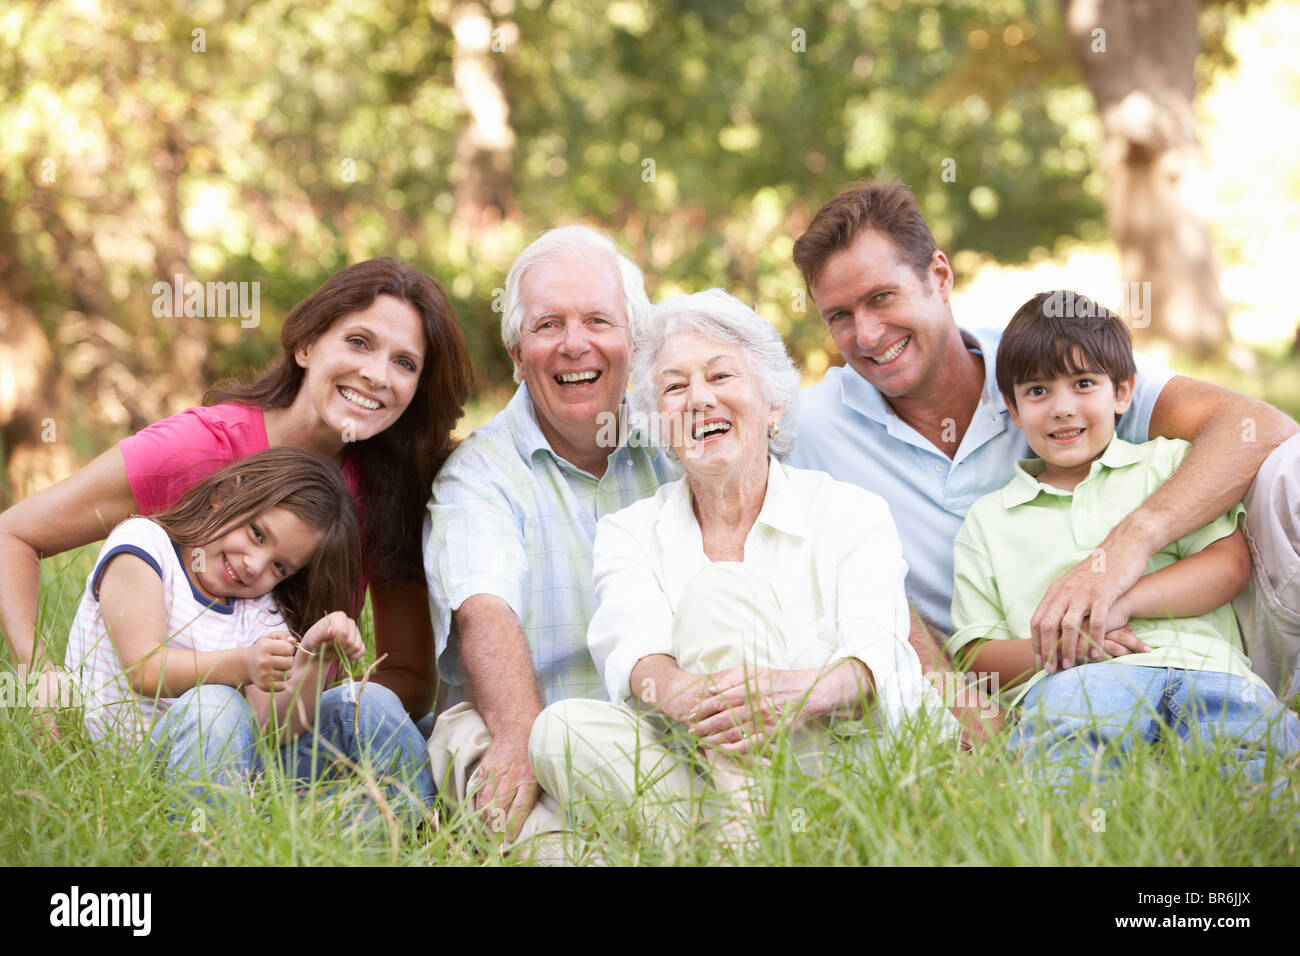 Portrait Of Extended Family Group In Park - Stock Image